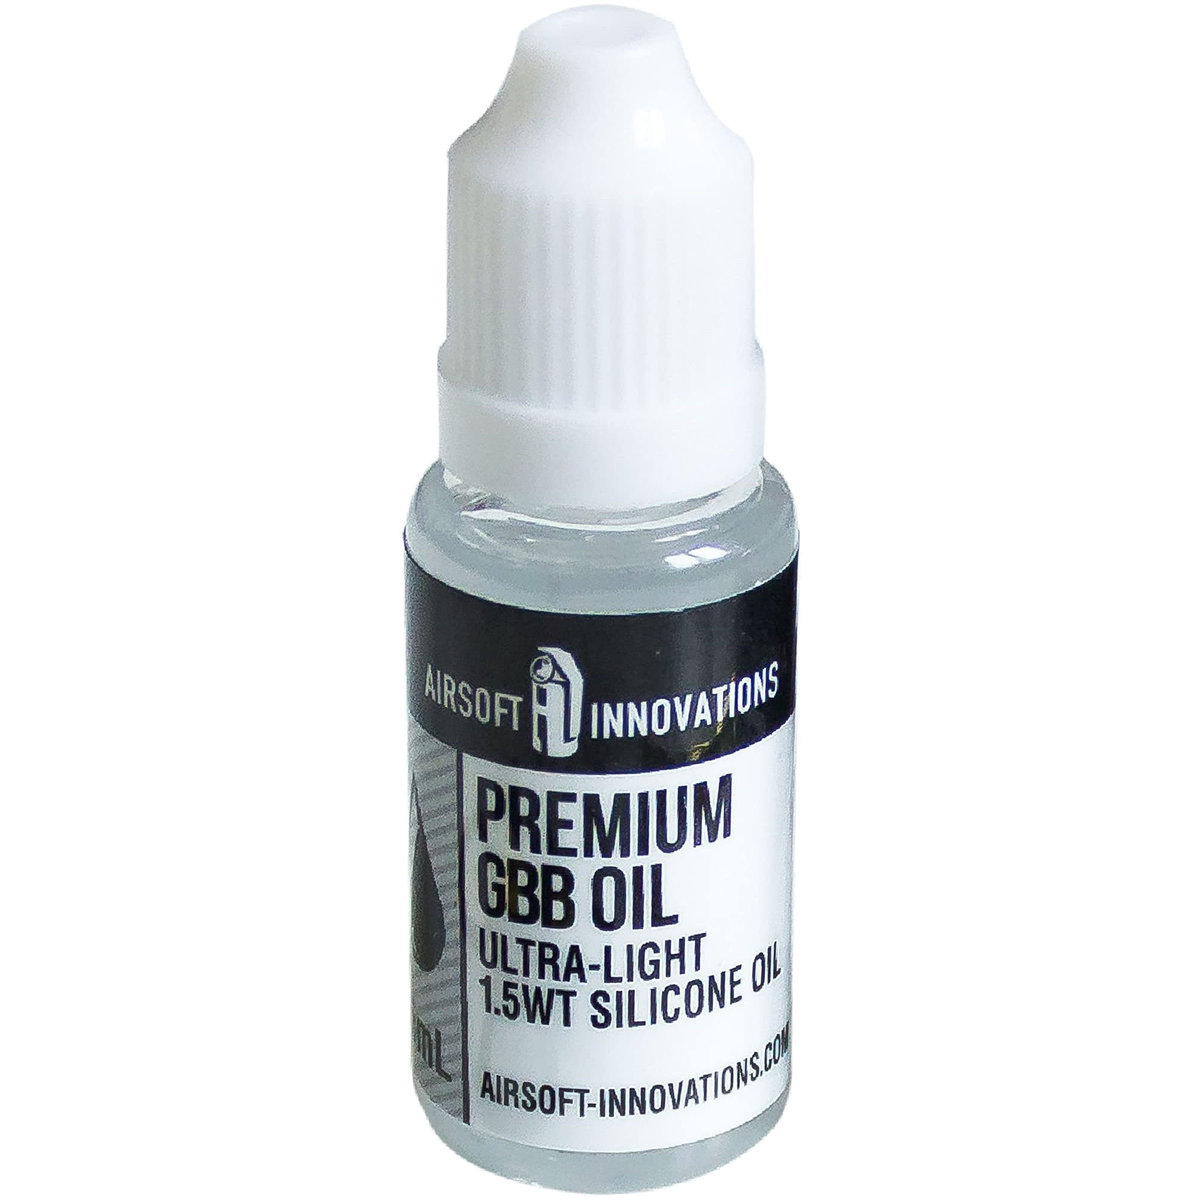 View larger image of Airsoft Innovations Premium GBB Ultra-Light Silicone Oil - 15ml